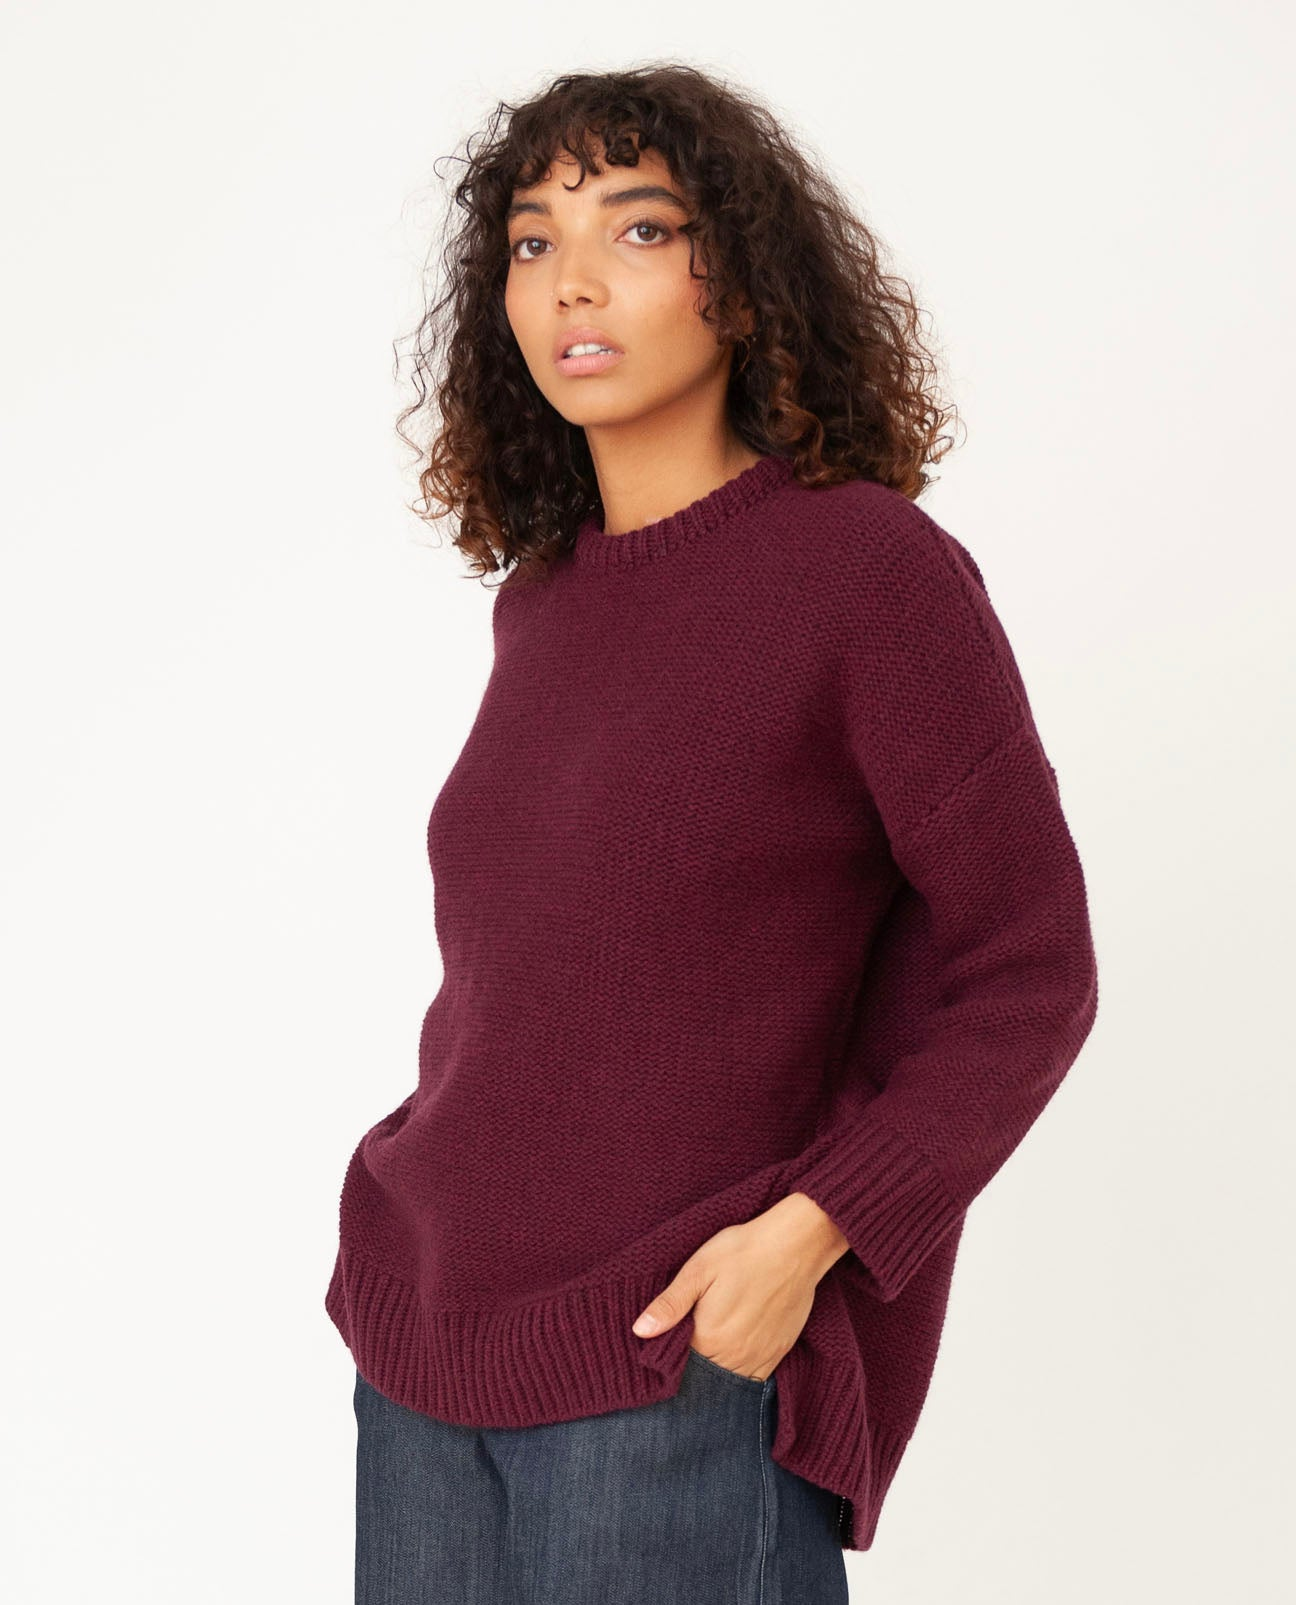 FAYE-MARIE Wool Jumper In Bordeaux